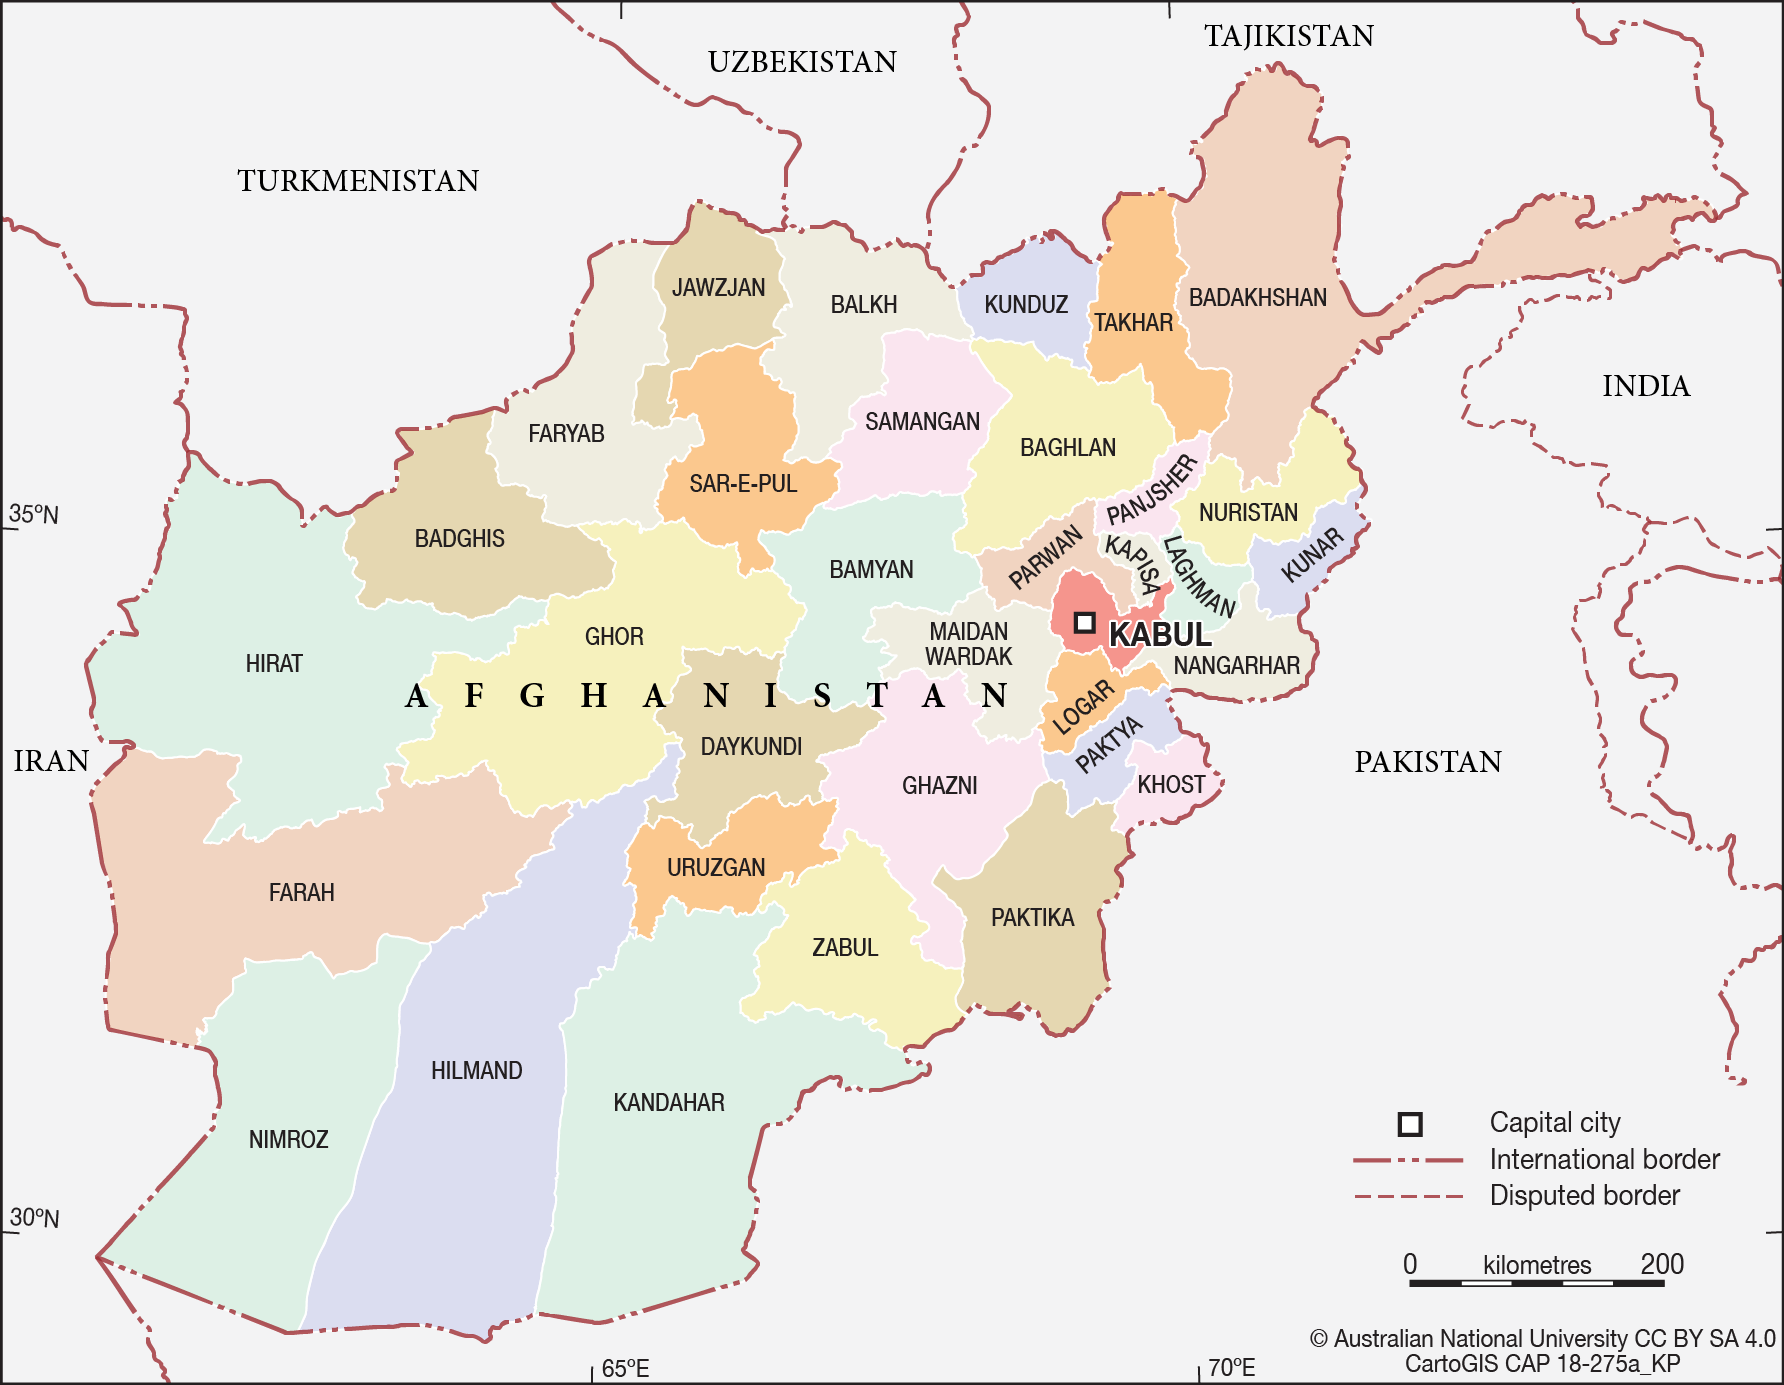 Afghanistan - Provinces - CartoGIS Services Maps Online - ANU on map of vietnam, map of islamic countries, map of netherlands, map of kandahar, map of aden, map of united kingdom, map of africa, map of siberia, map of pakistan, map of hindu kush, map of world, osama bin laden, middle east, saudi arabia, map of jamaica, map of europe, map of kathmandu, map of asia, united states of america, map of kyrgyzstan, map of western hemisphere, map of middle east, sri lanka, map of usa,